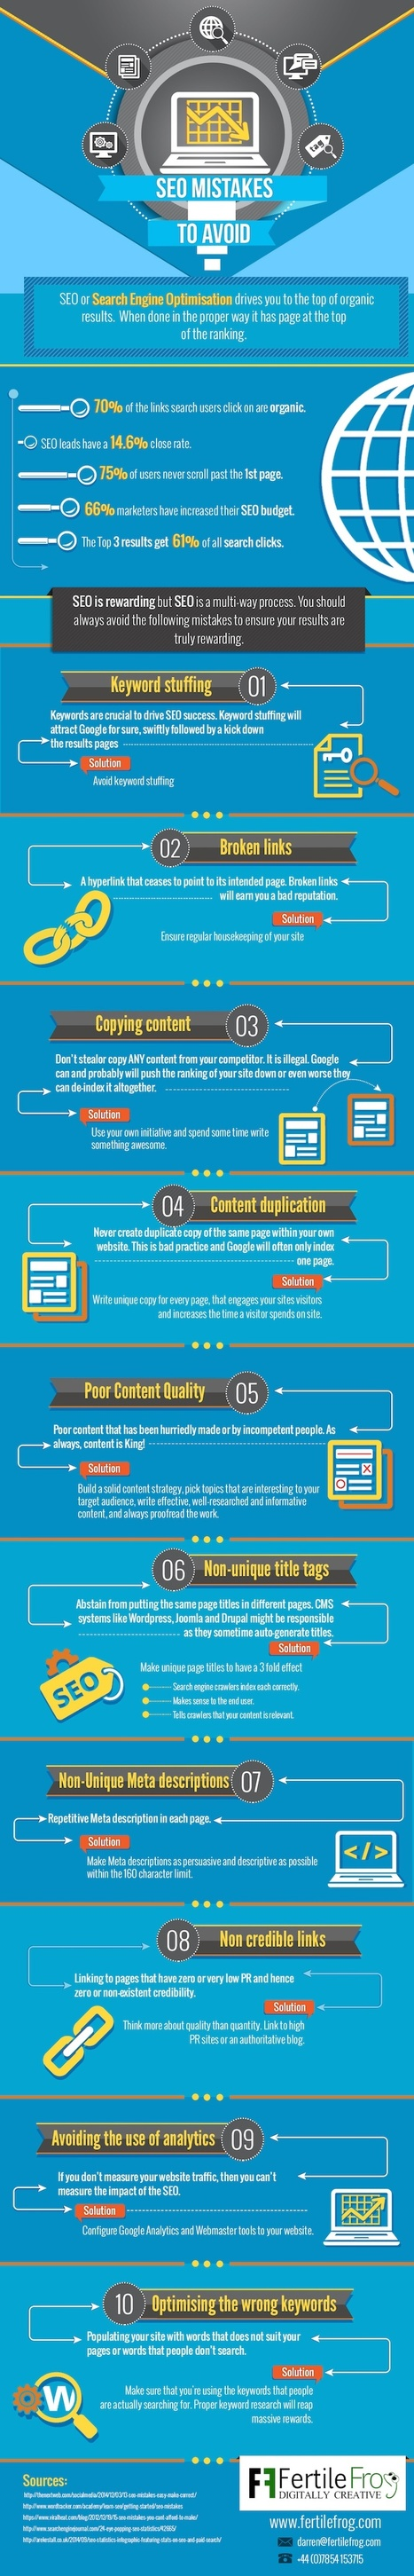 Want to Rank Better in Search? Avoid These 10 SEO Mistakes [Infographic] | Surviving Social Chaos | Scoop.it